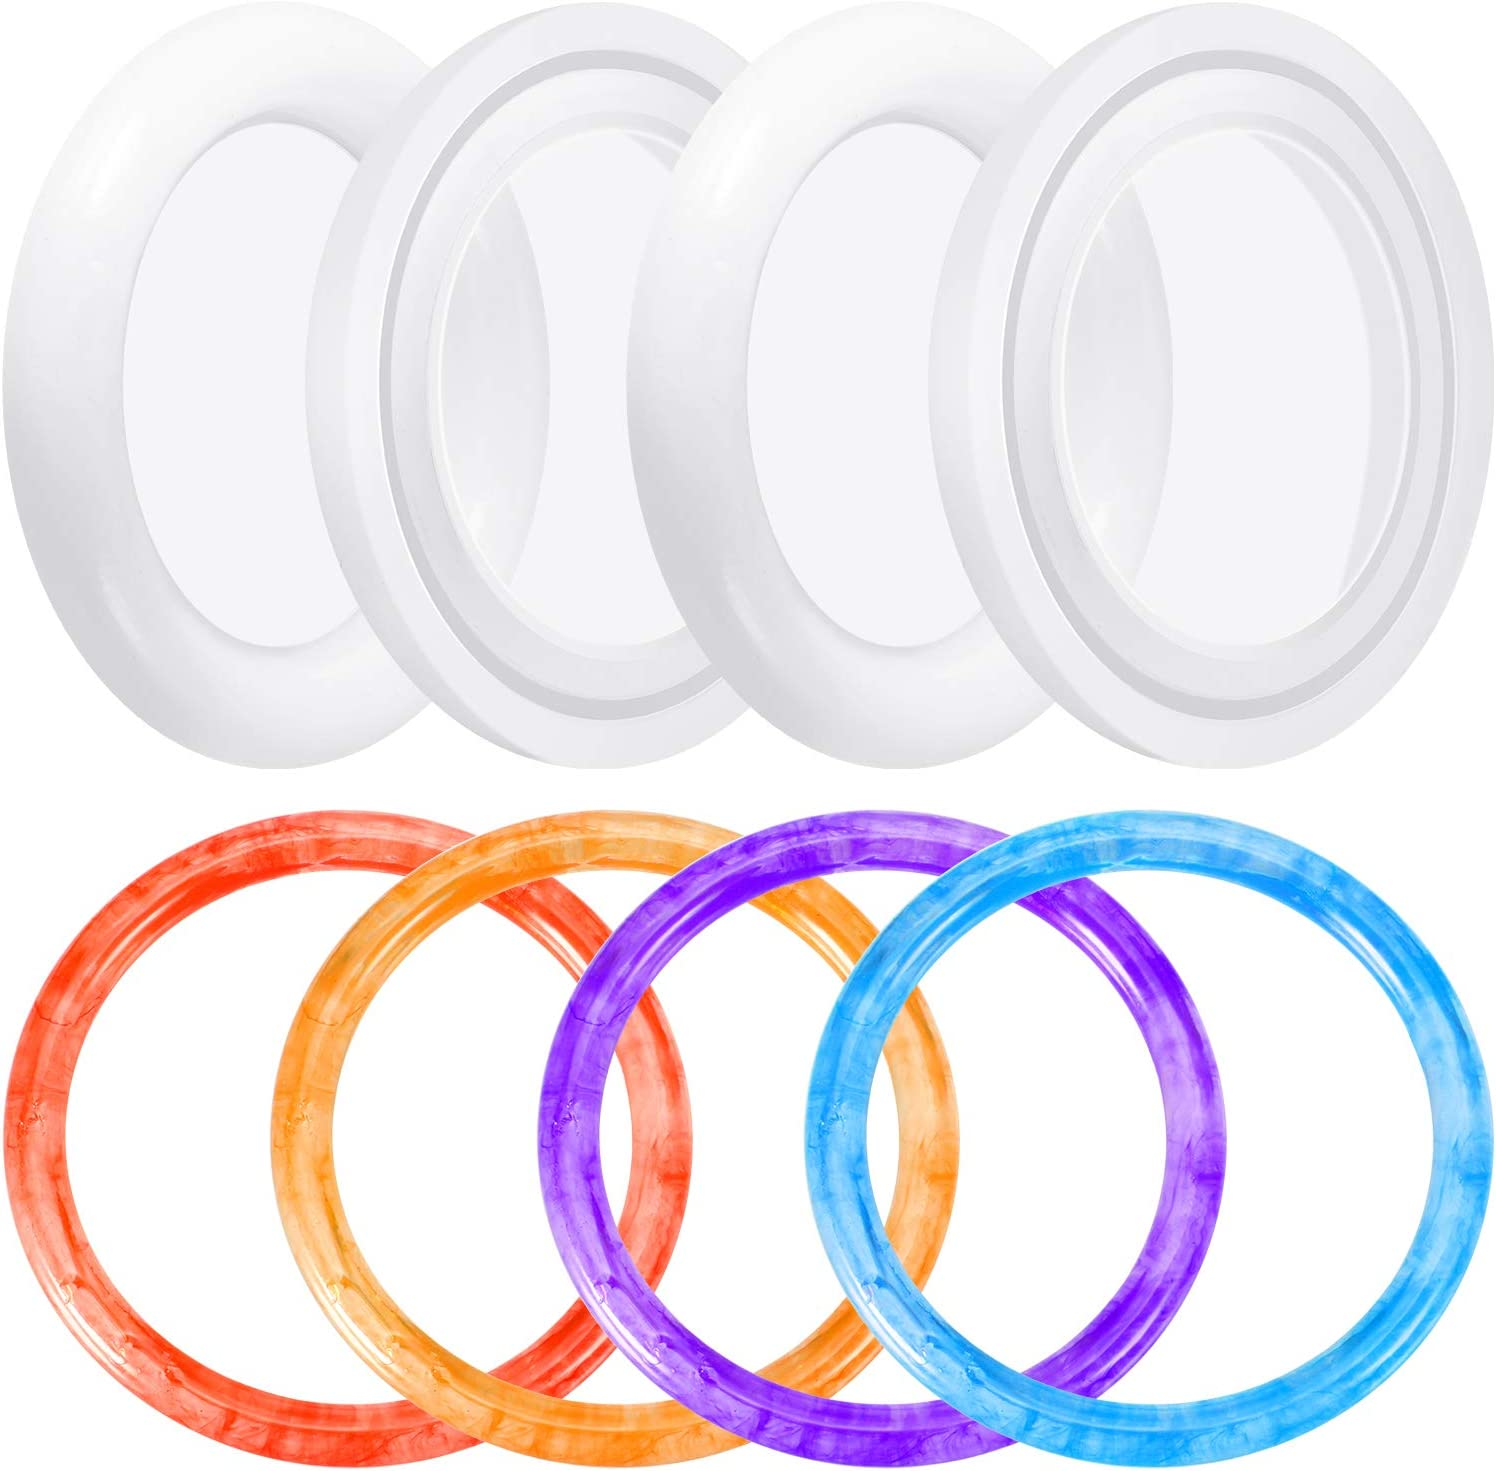 5Pack 60MM Round Bracelet Silicone Mould Key Chain Crystal Epoxy Ring Mold for DIY Resin Bangle Bracelet Jewelry